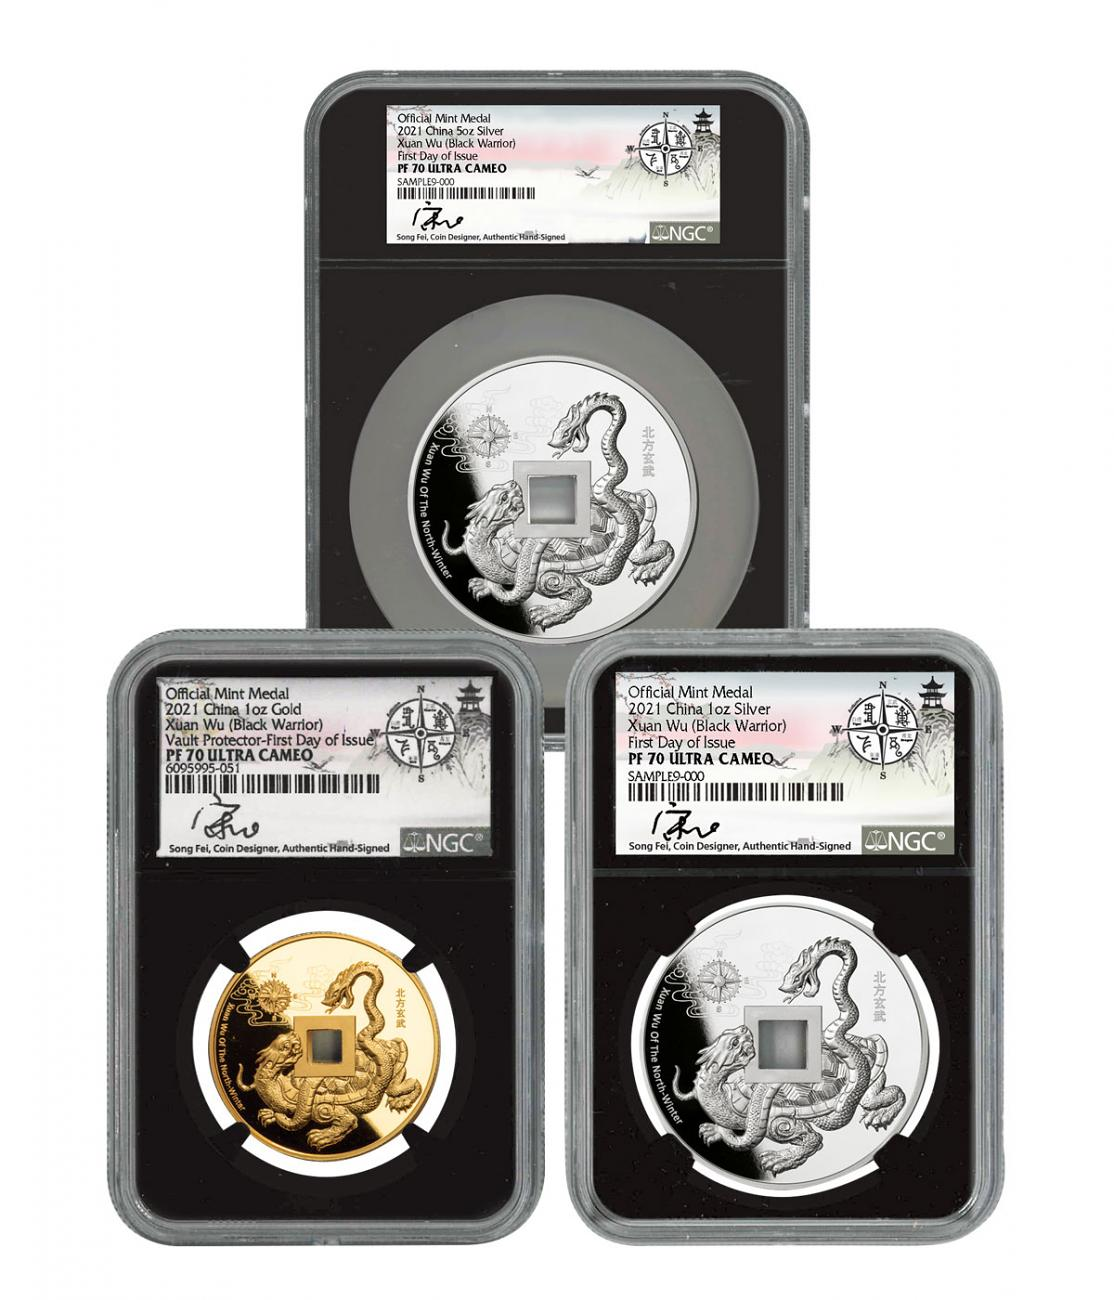 3-Piece Set - 2021 1oz Gold/Slv+ 5oz Silver Black Warrior Vault Protector Scarce and Unique Coin Division NGC PF70 UC FDI Song Fei Signature Label